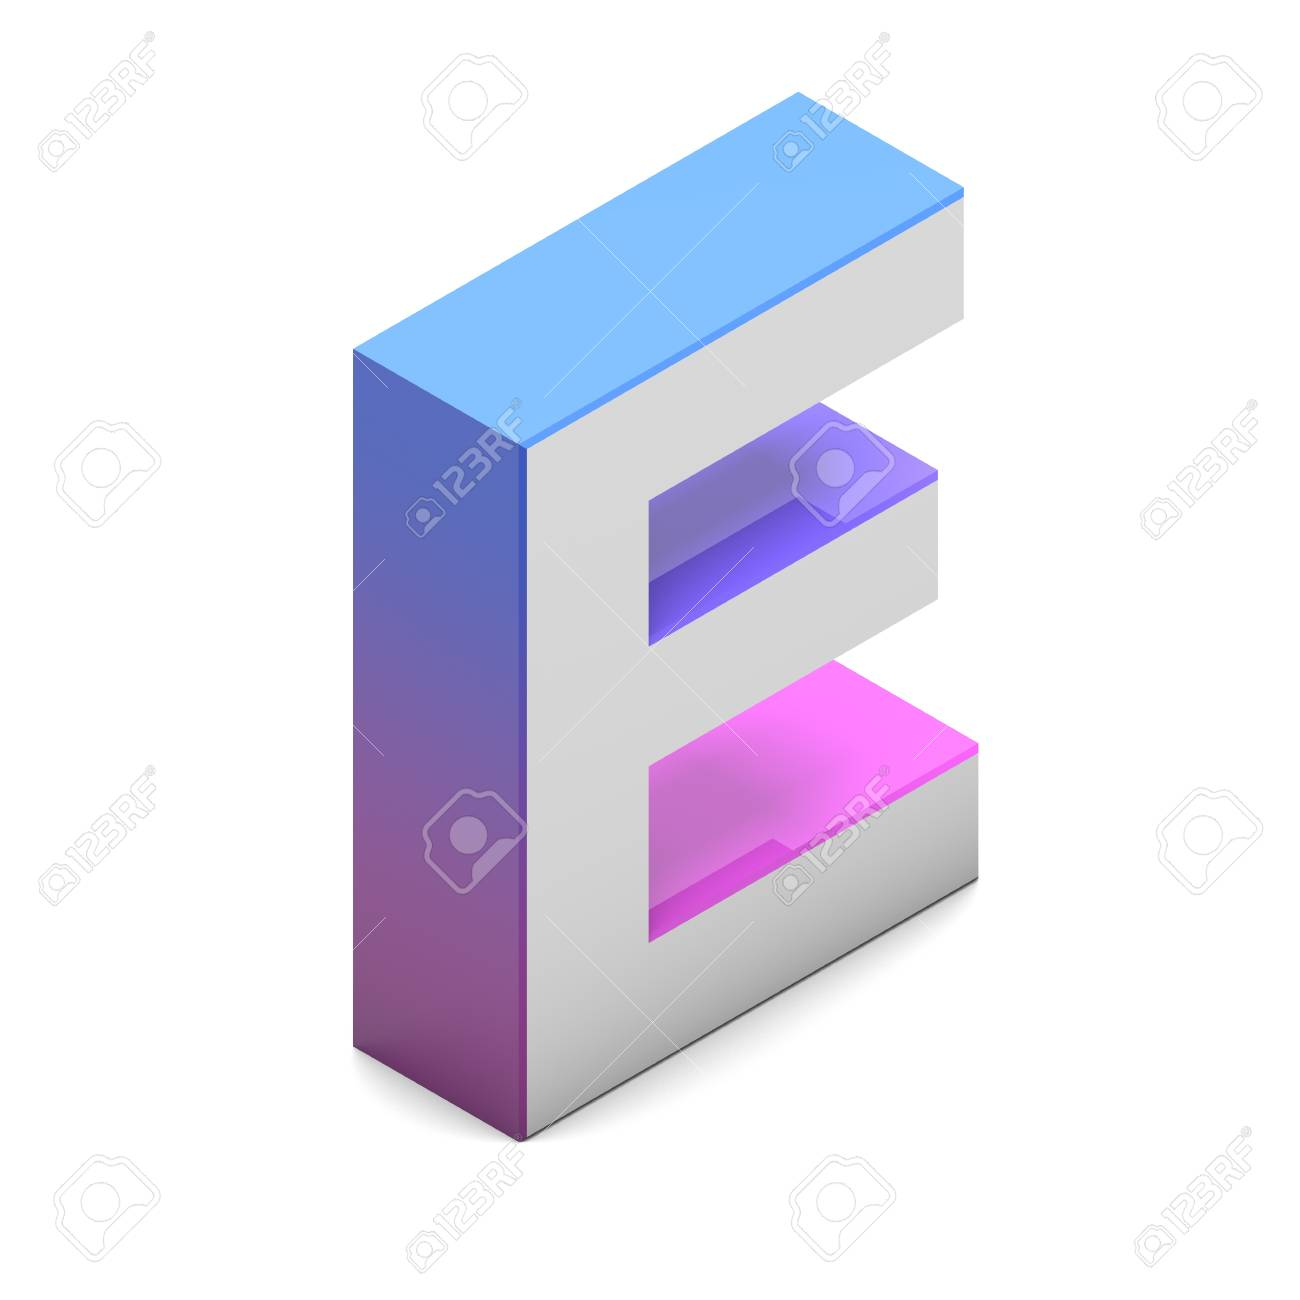 Letter E Isometric Lettering Font With Pink Blue Gradient Stock Photo